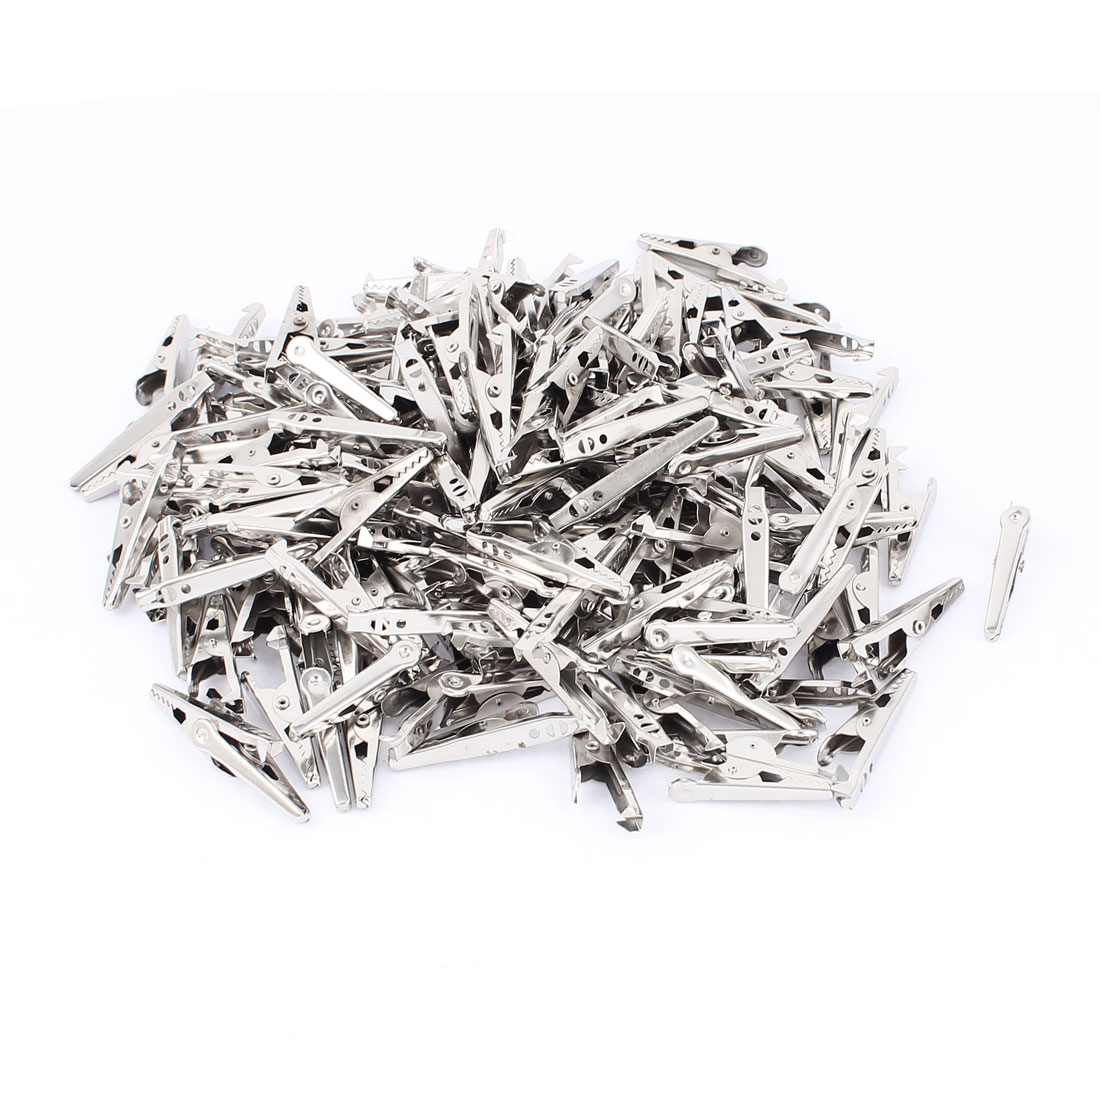 200Pcs Non-Insulated Electric Testing Alligator Clips Crocodile Clamps